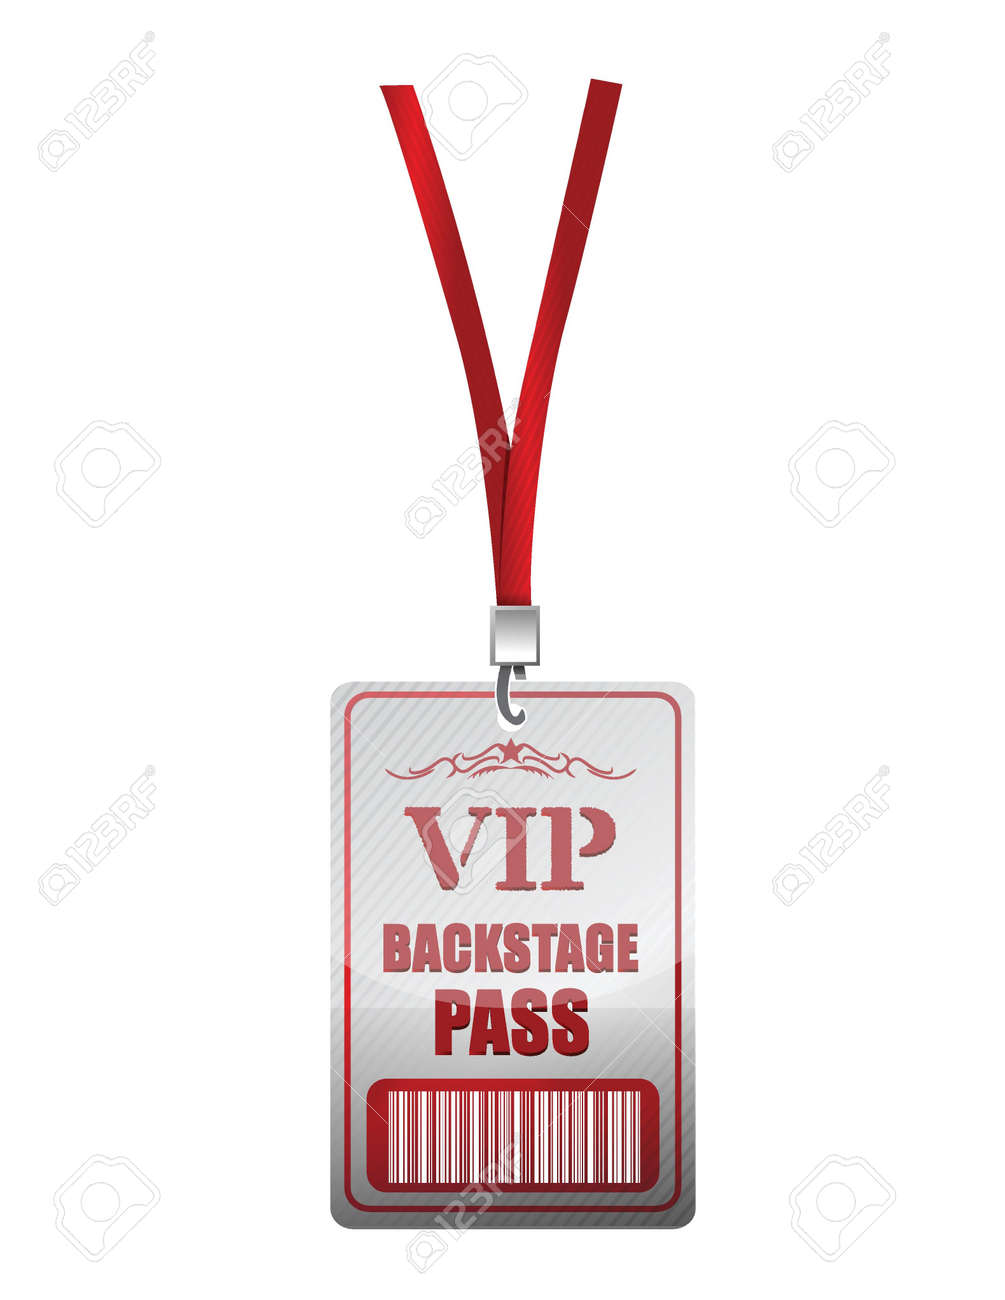 Backstage pass vip illustration design over a white background Stock Vector - 19311293